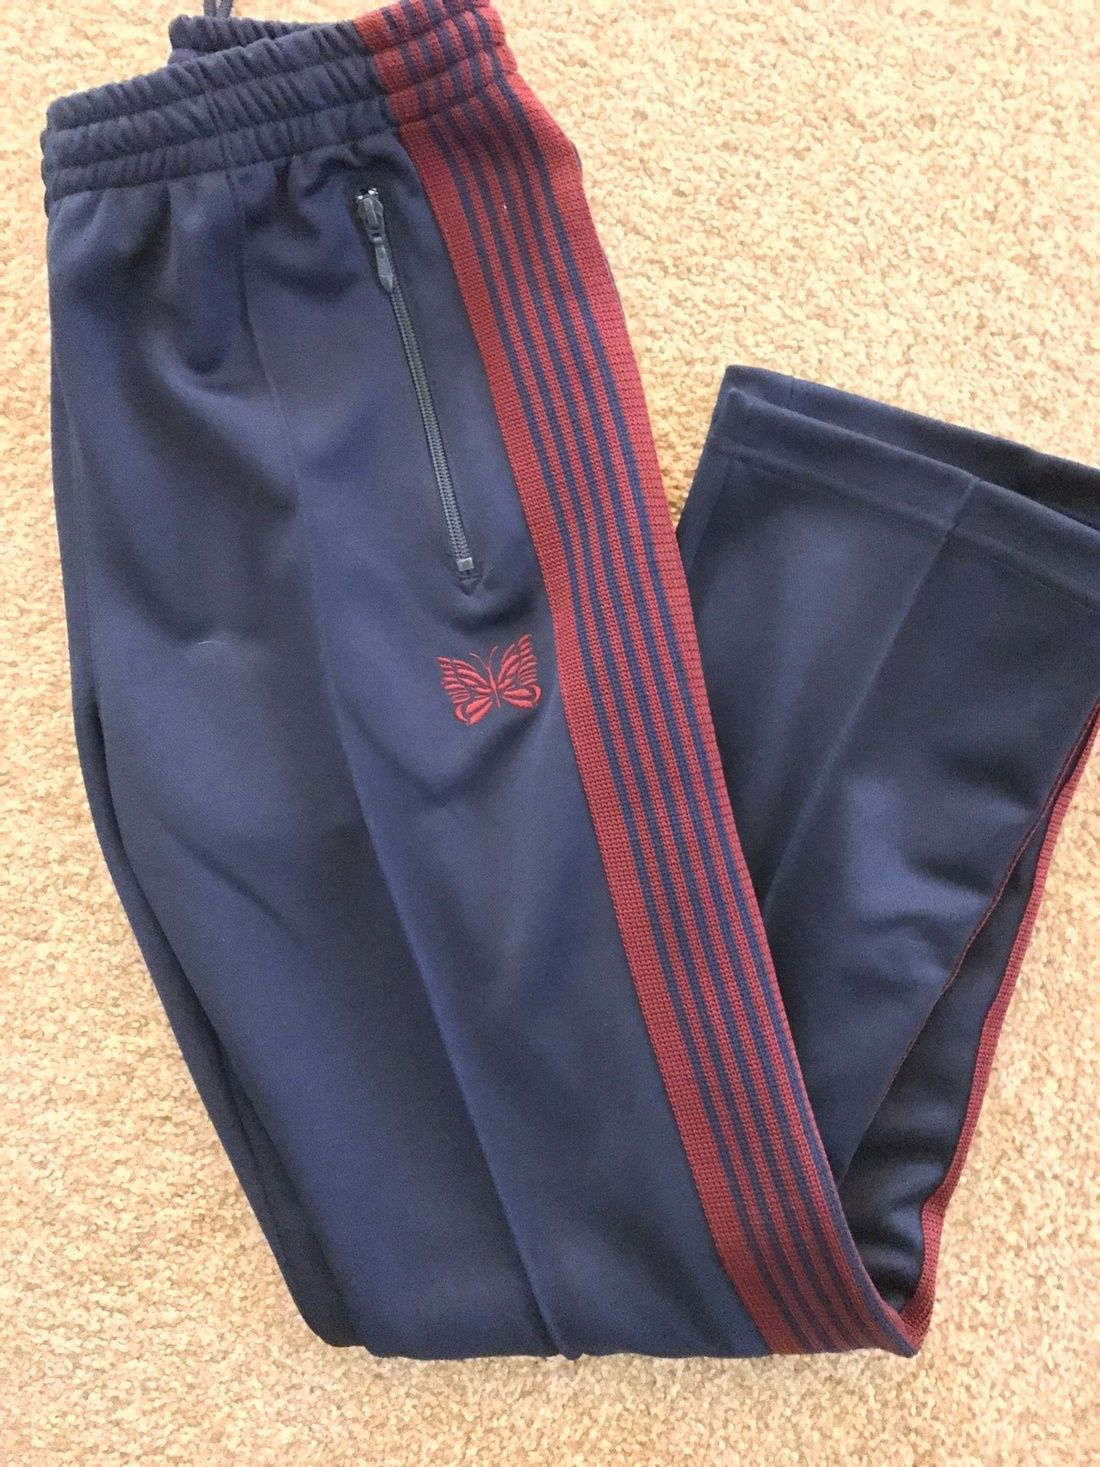 b4760bf13d1bf3 Needles Needles Narrow Track Pants Sweatpants Navy Red Size Small Brand New  With Tags Size 29 $360 - Grailed